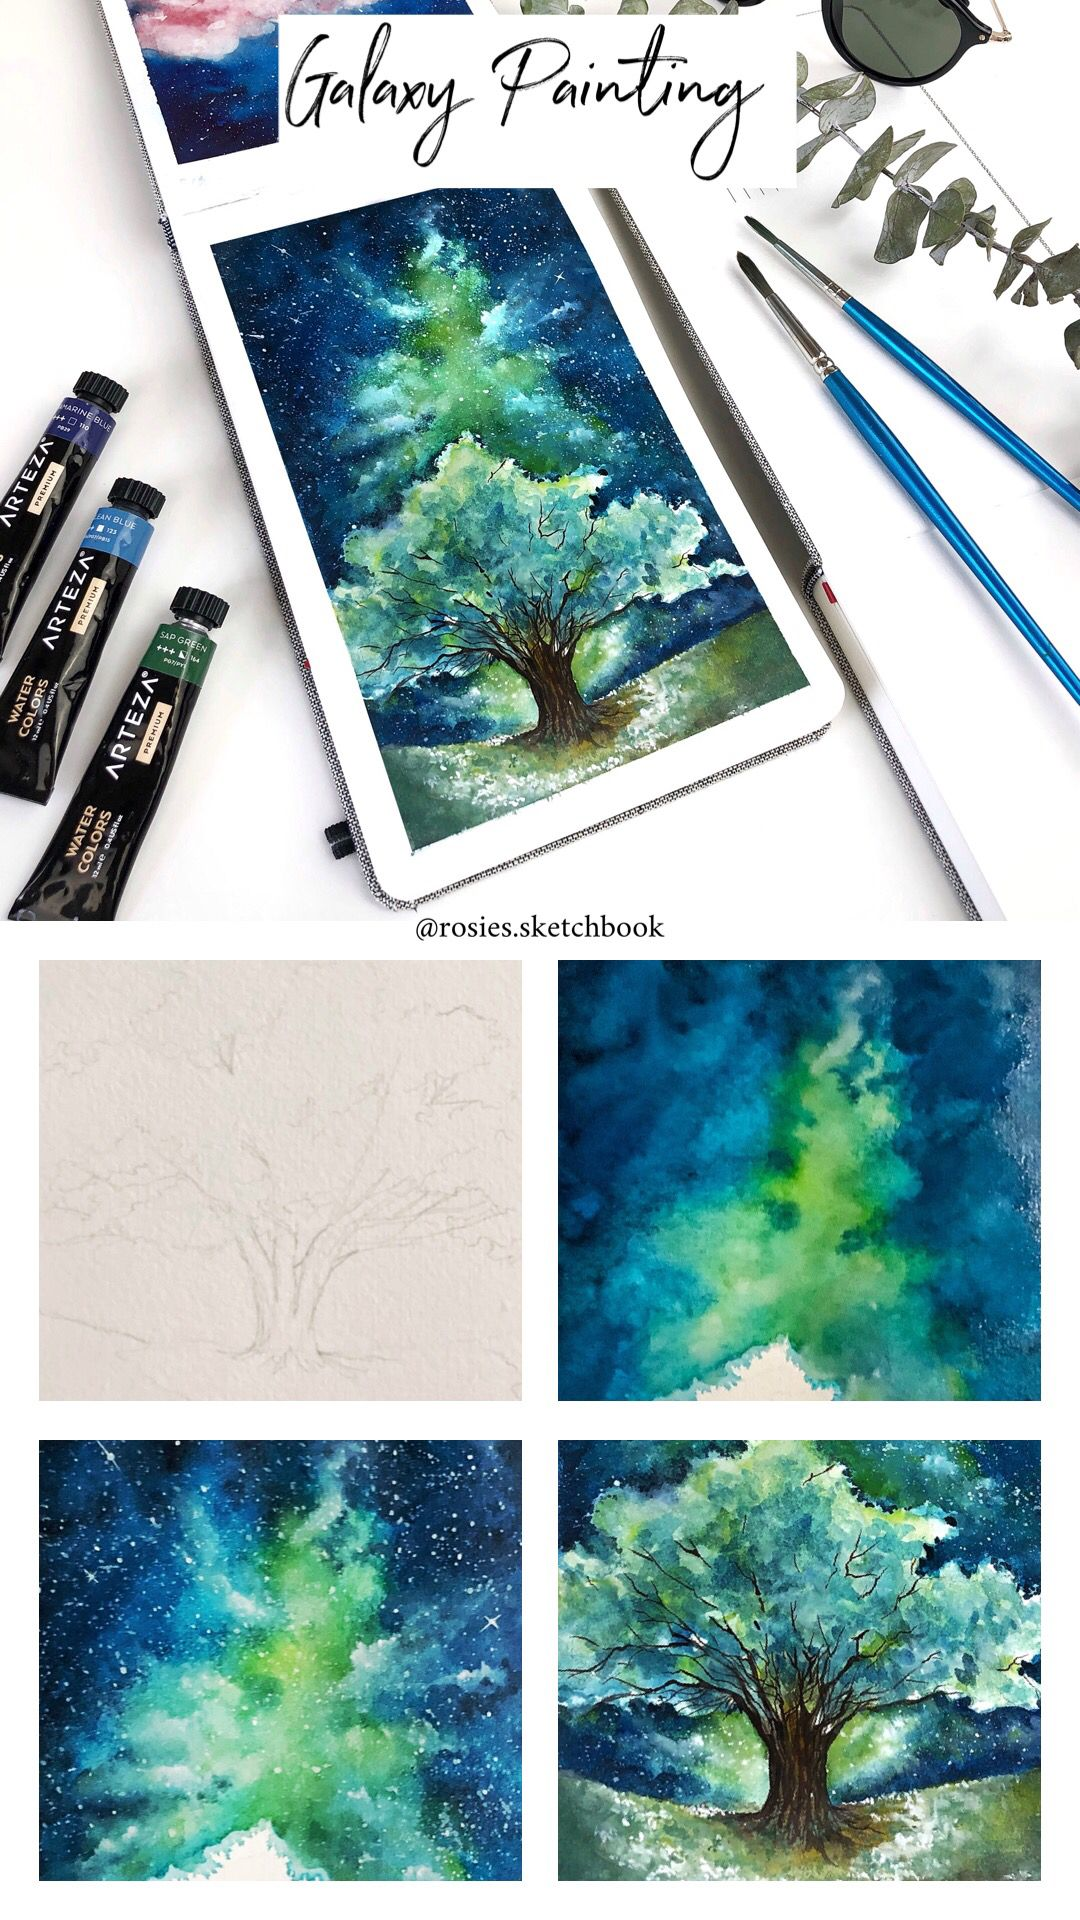 Mini Galaxy Painting Tutorial With Step By Step Process Photos